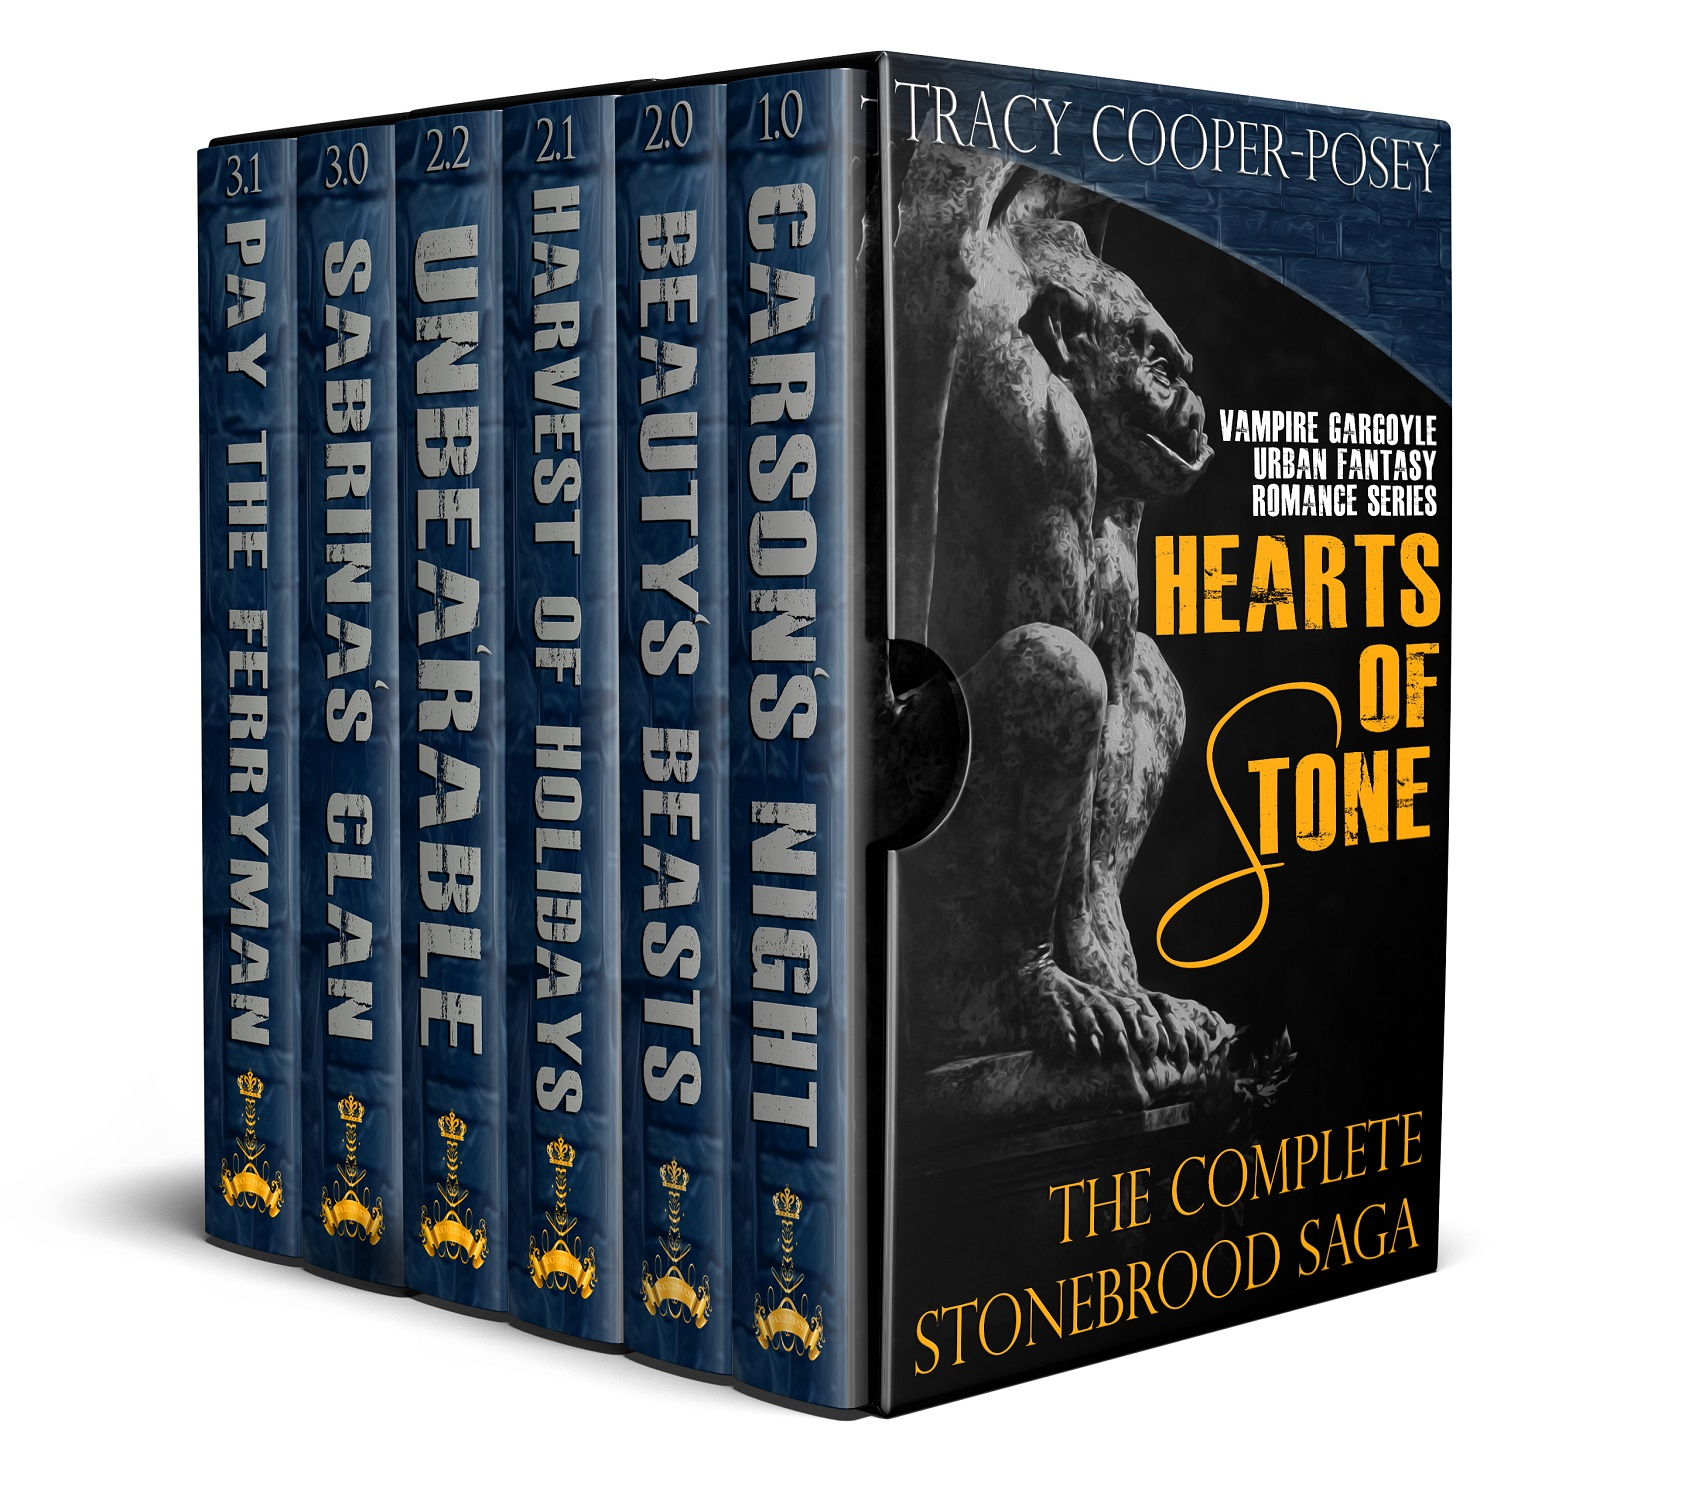 $13 off super hot paranormal romance boxed series set.